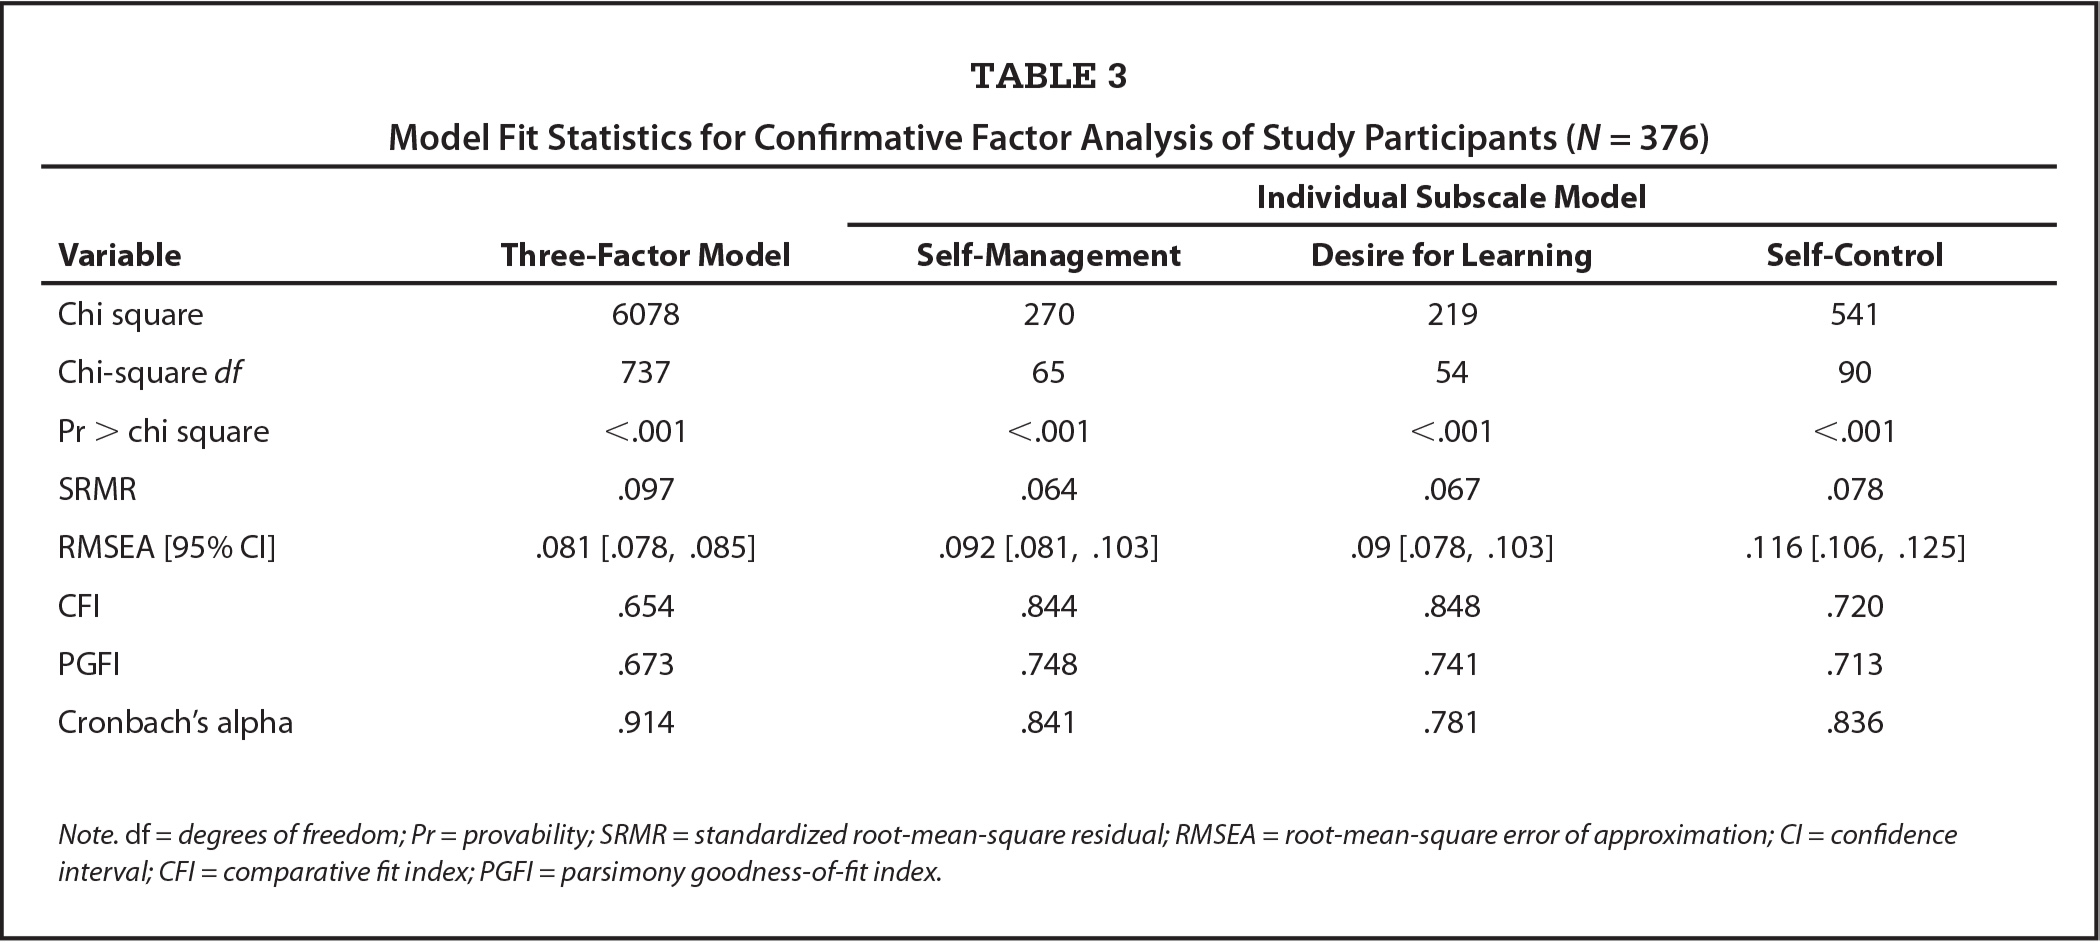 Model Fit Statistics for Confirmative Factor Analysis of Study Participants (N = 376)